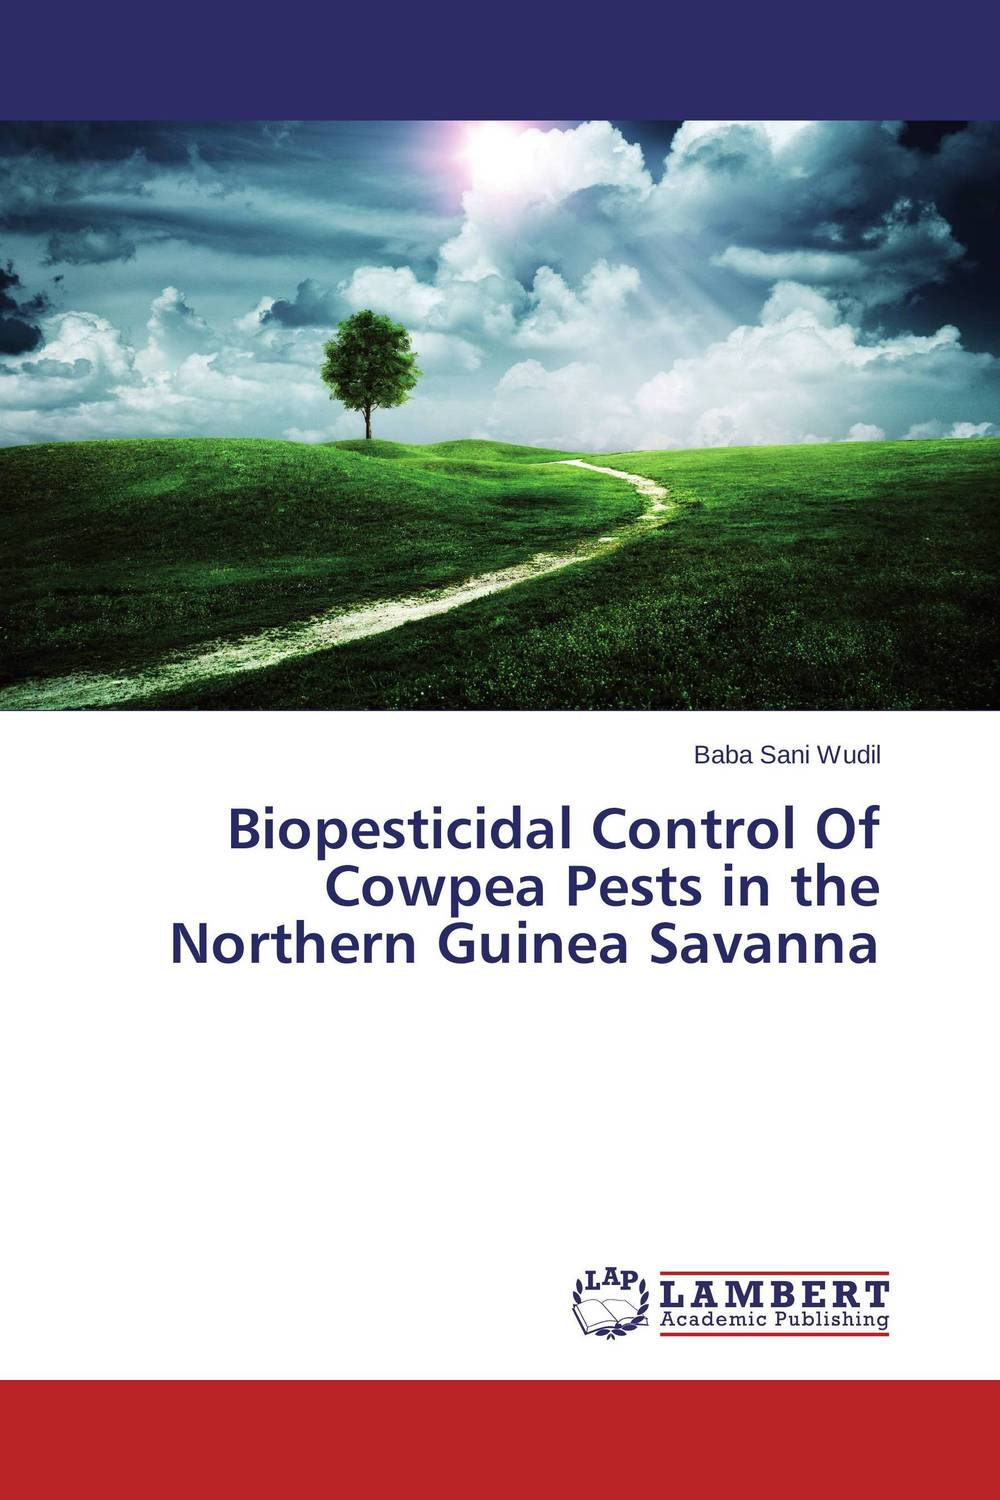 Biopesticidal Control Of Cowpea Pests in the Northern Guinea Savanna